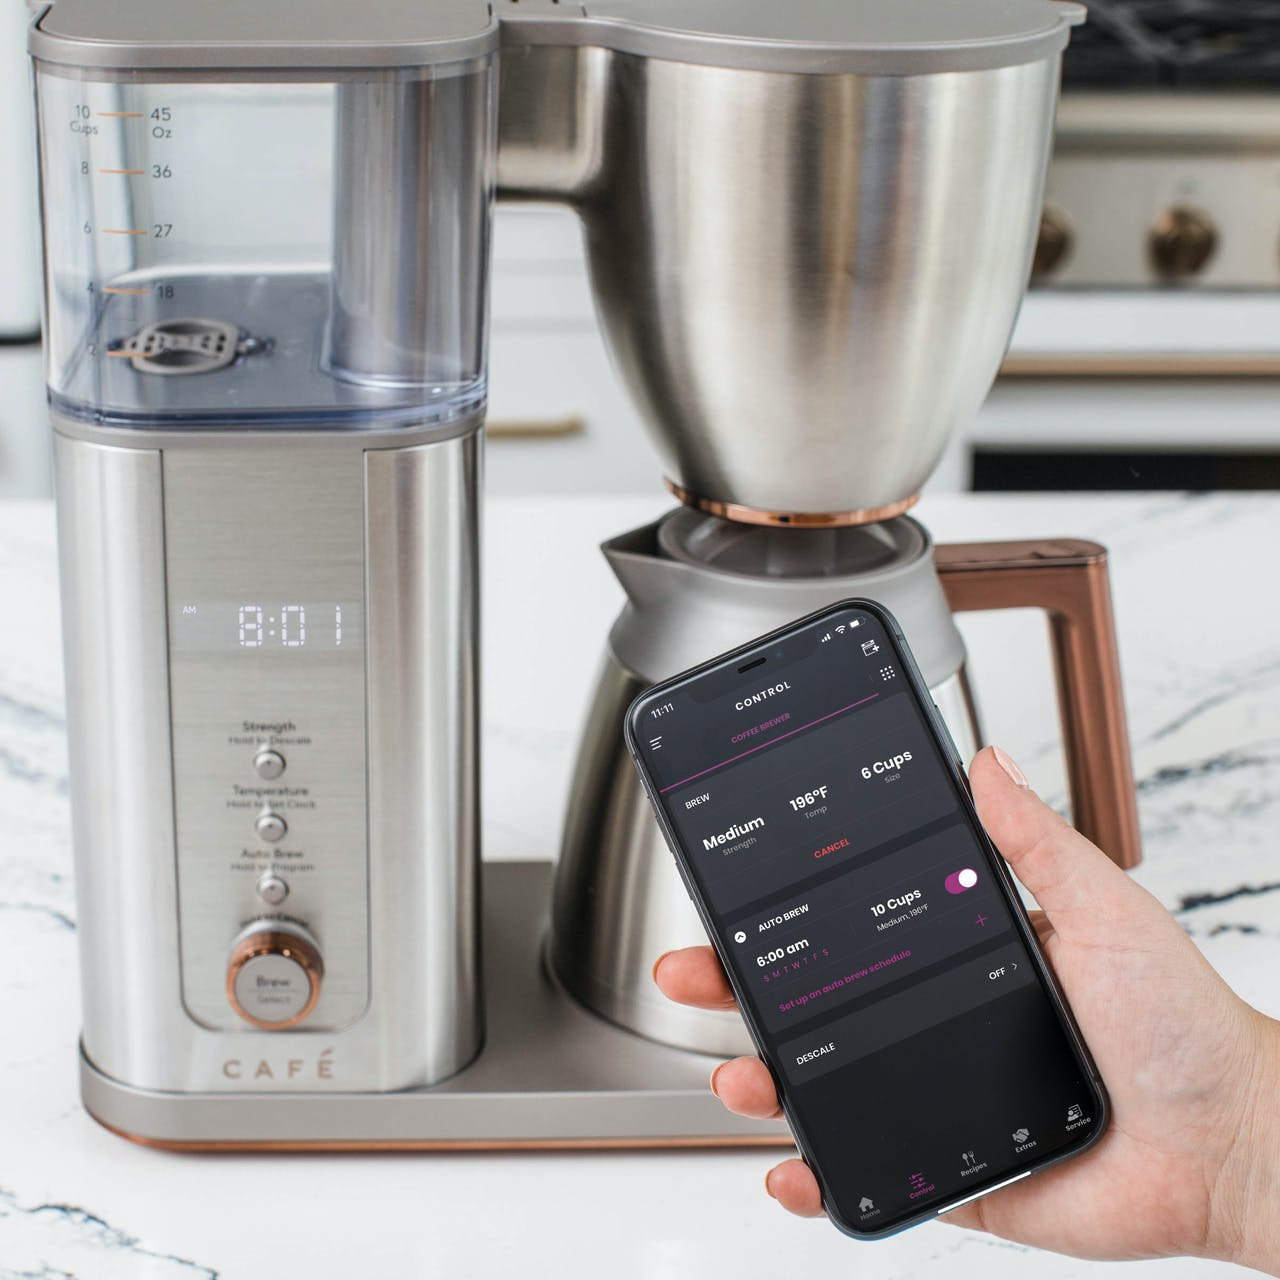 smartHQ app on phone by cafe coffee maker